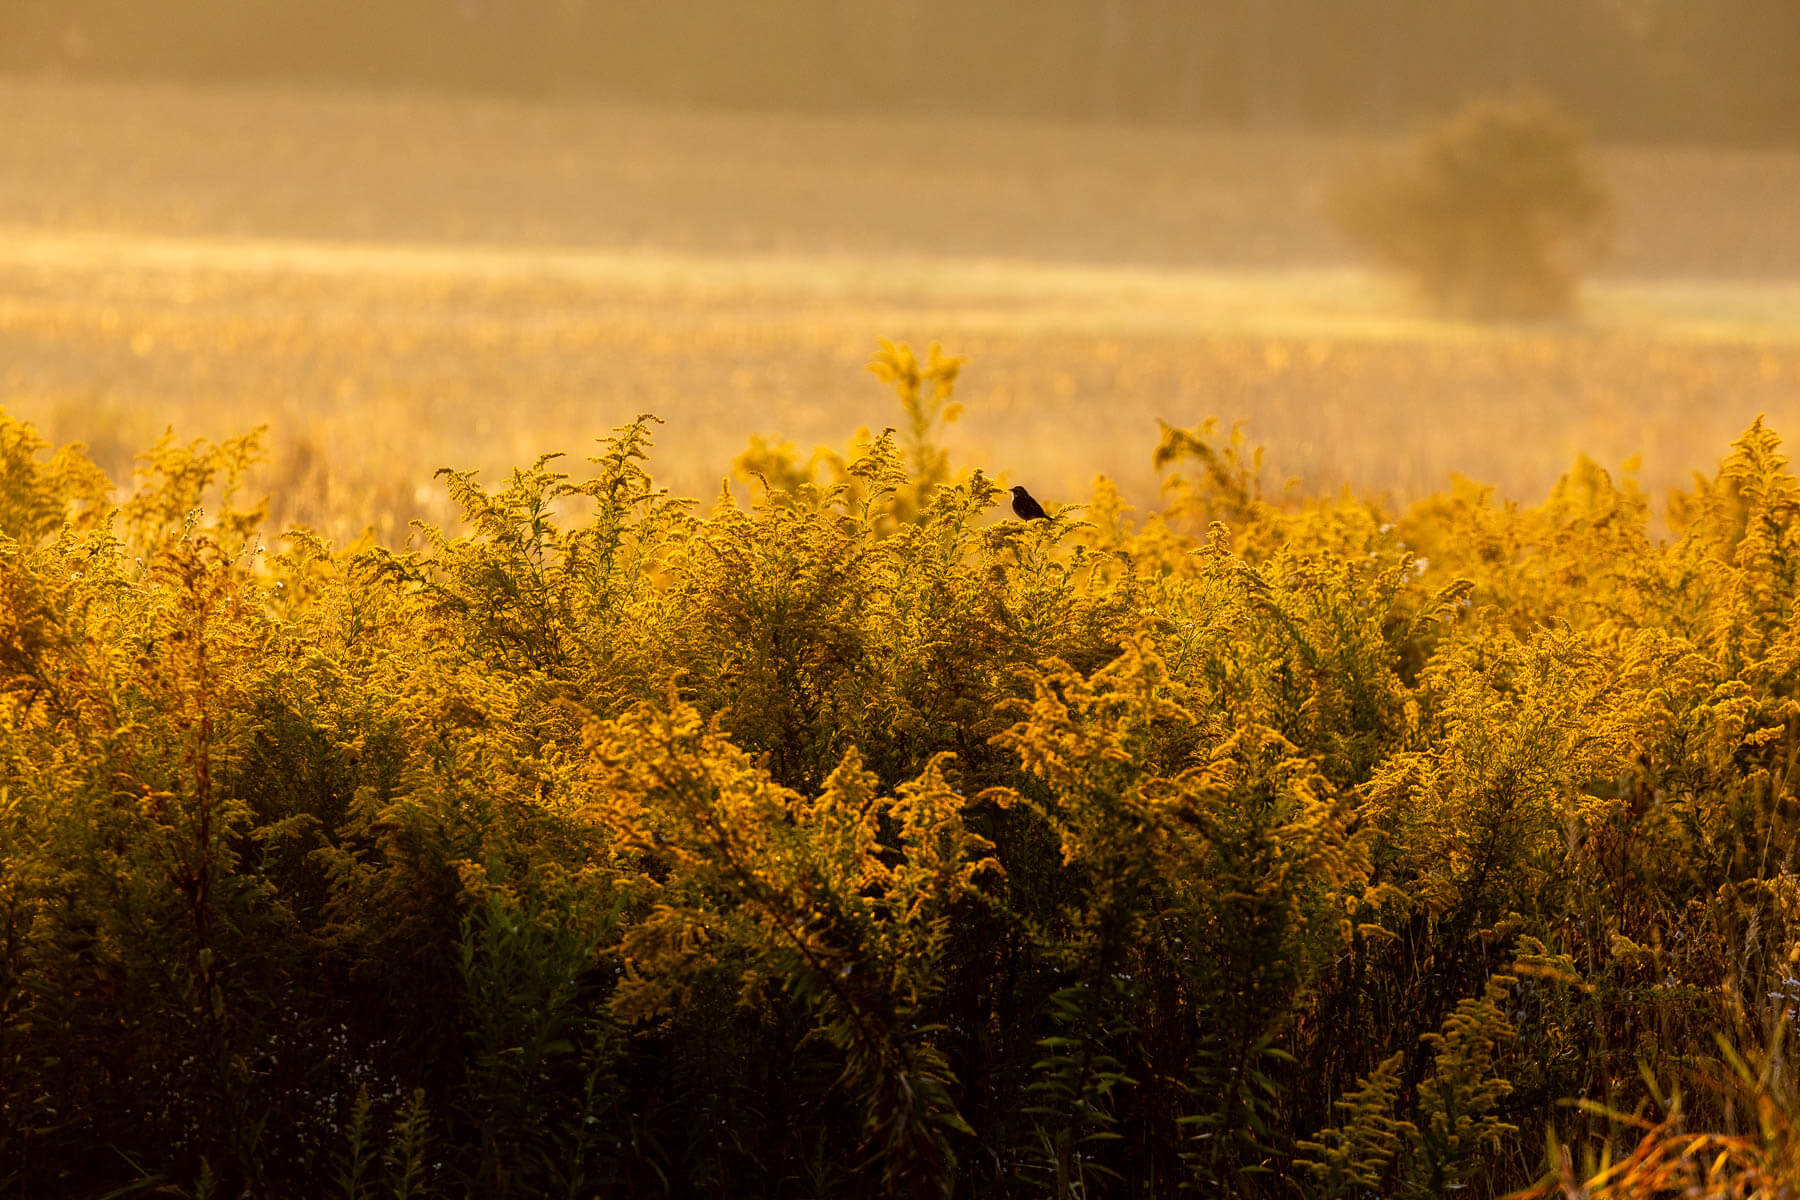 Yellow wildflowers at sunrise with a single bird perched